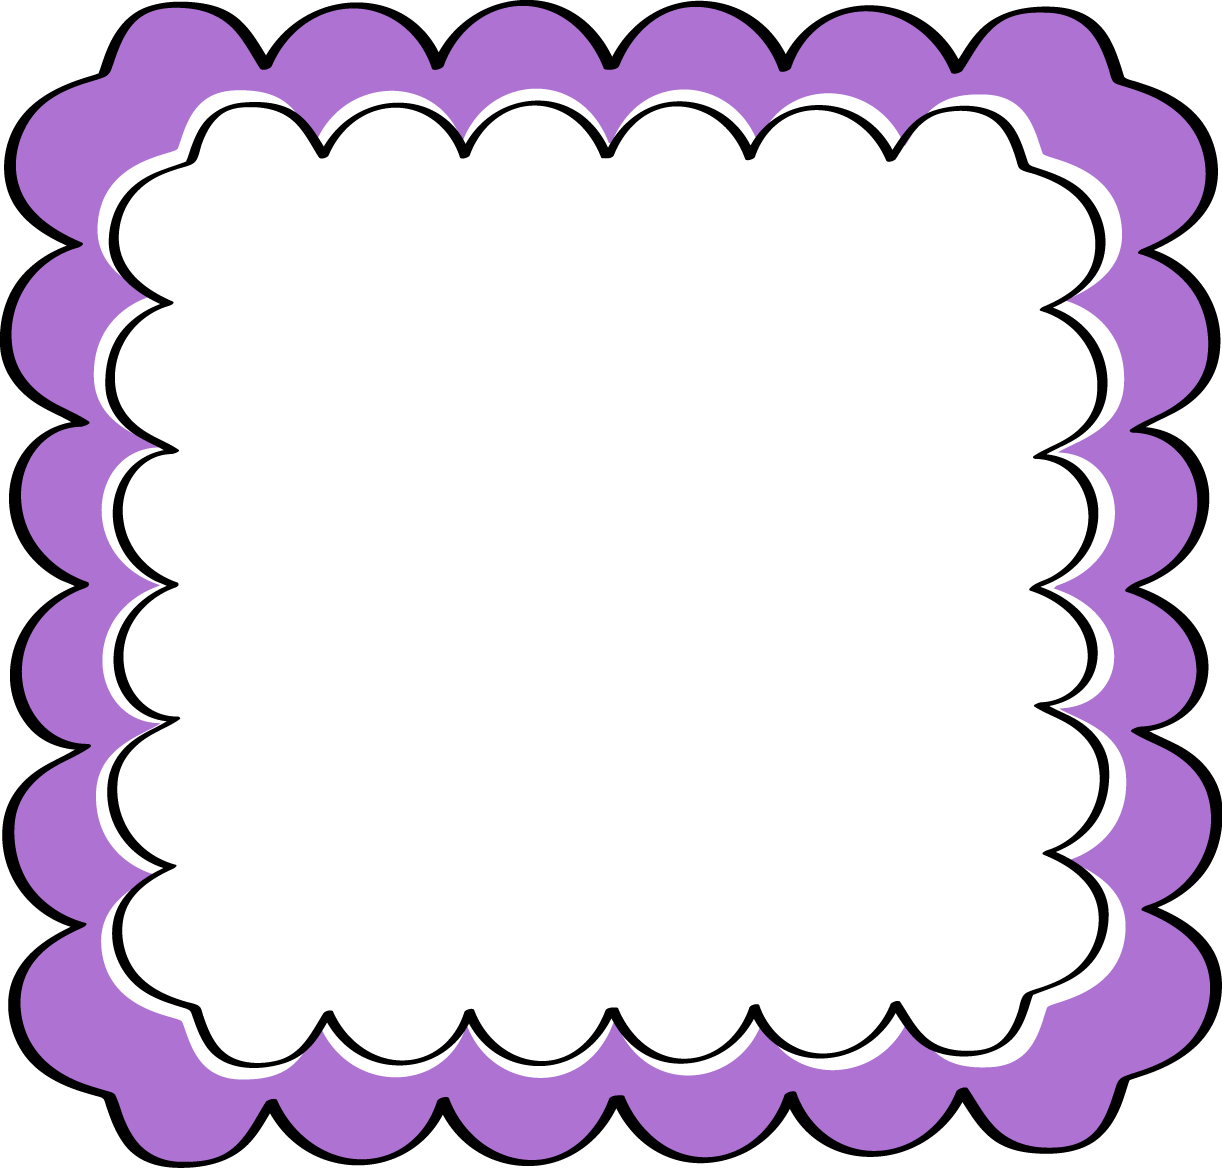 Gate clipart border clipart. Broadway borders and frames